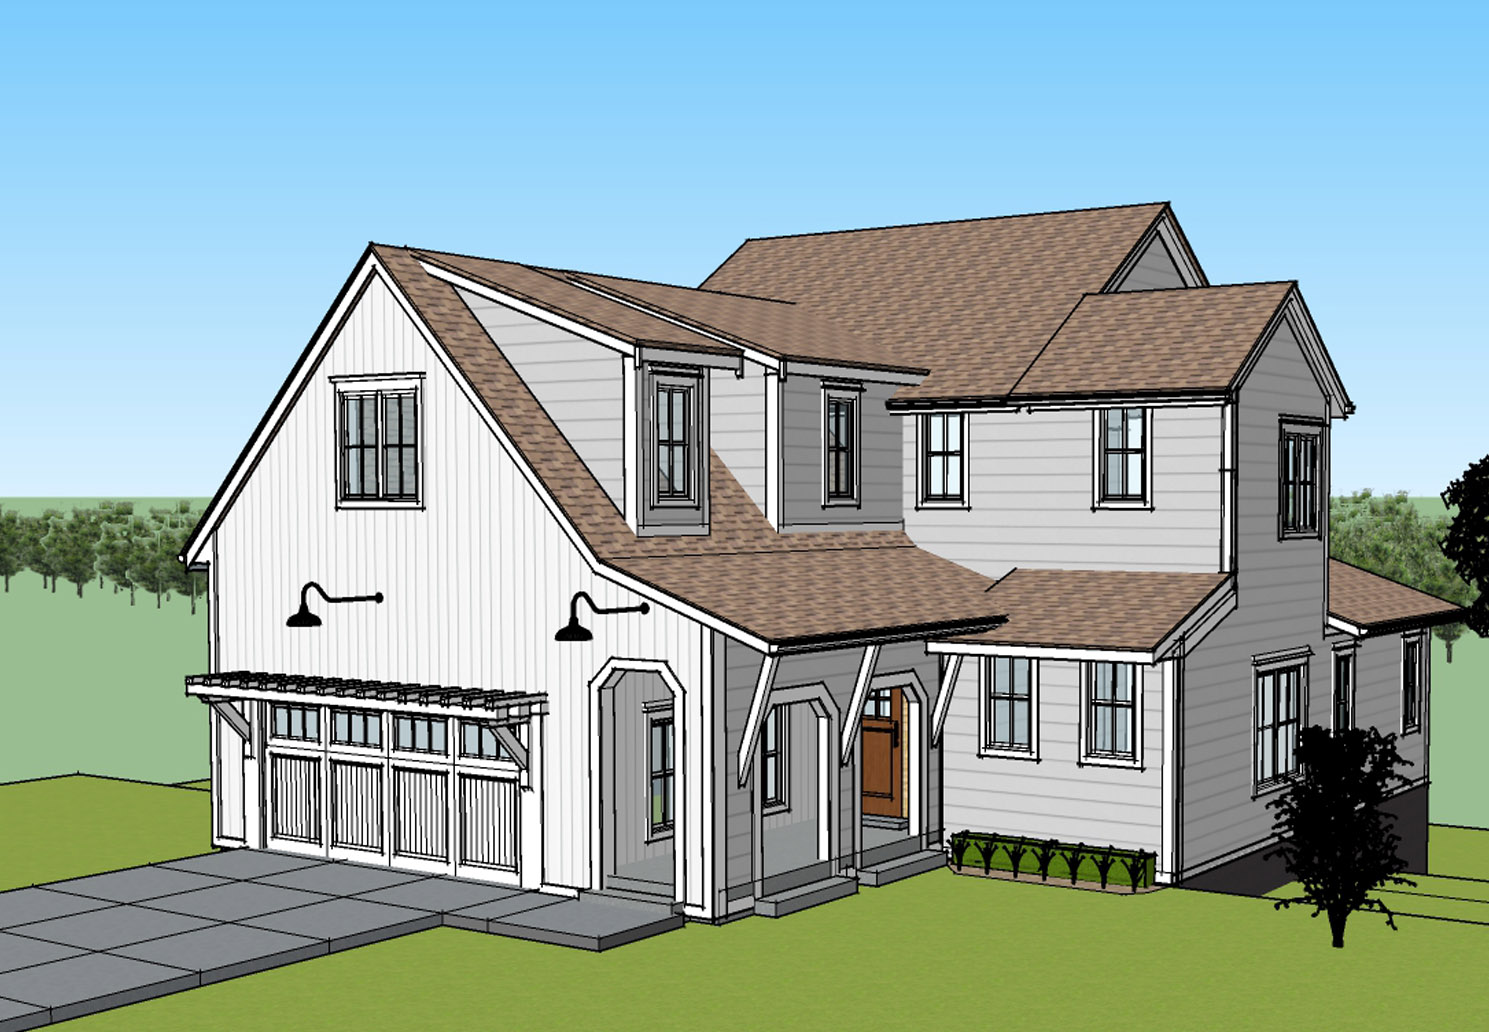 Elevation concept image of a house under construction in Tamarack Ridge